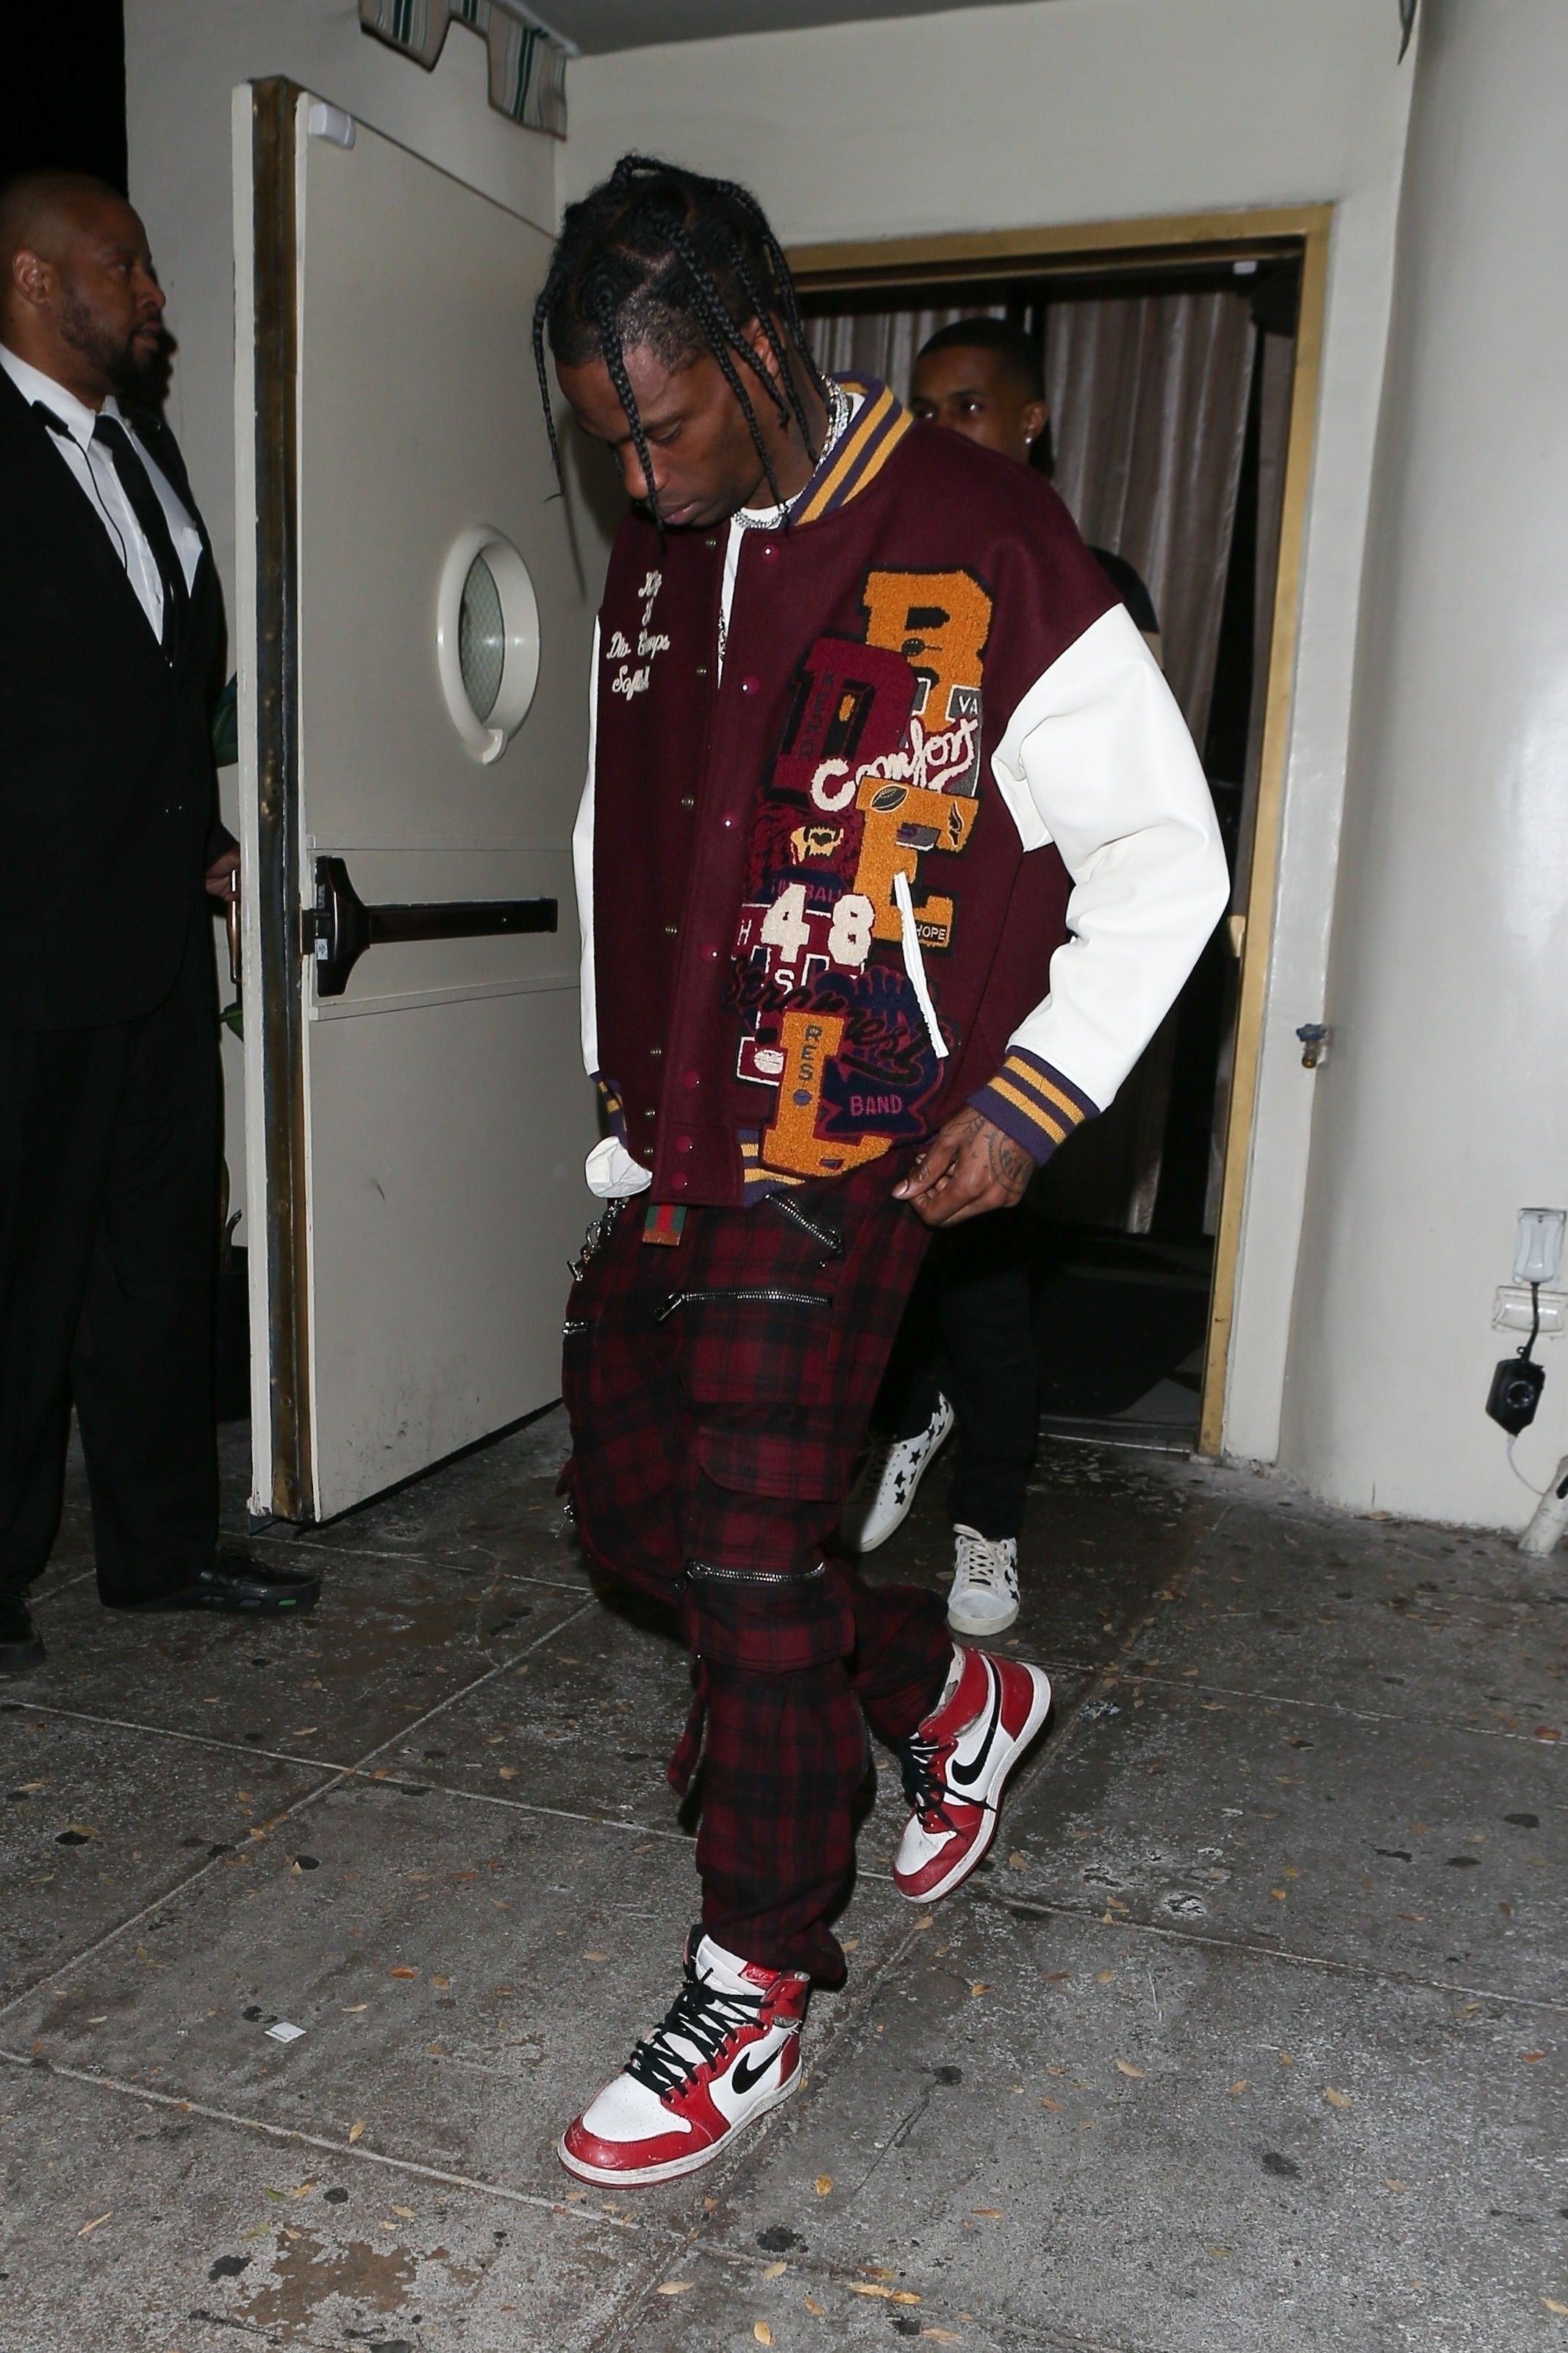 61193b4e164352 Travis Scott wearing Doublet  Chaos  Embroidery Letterman Jacket